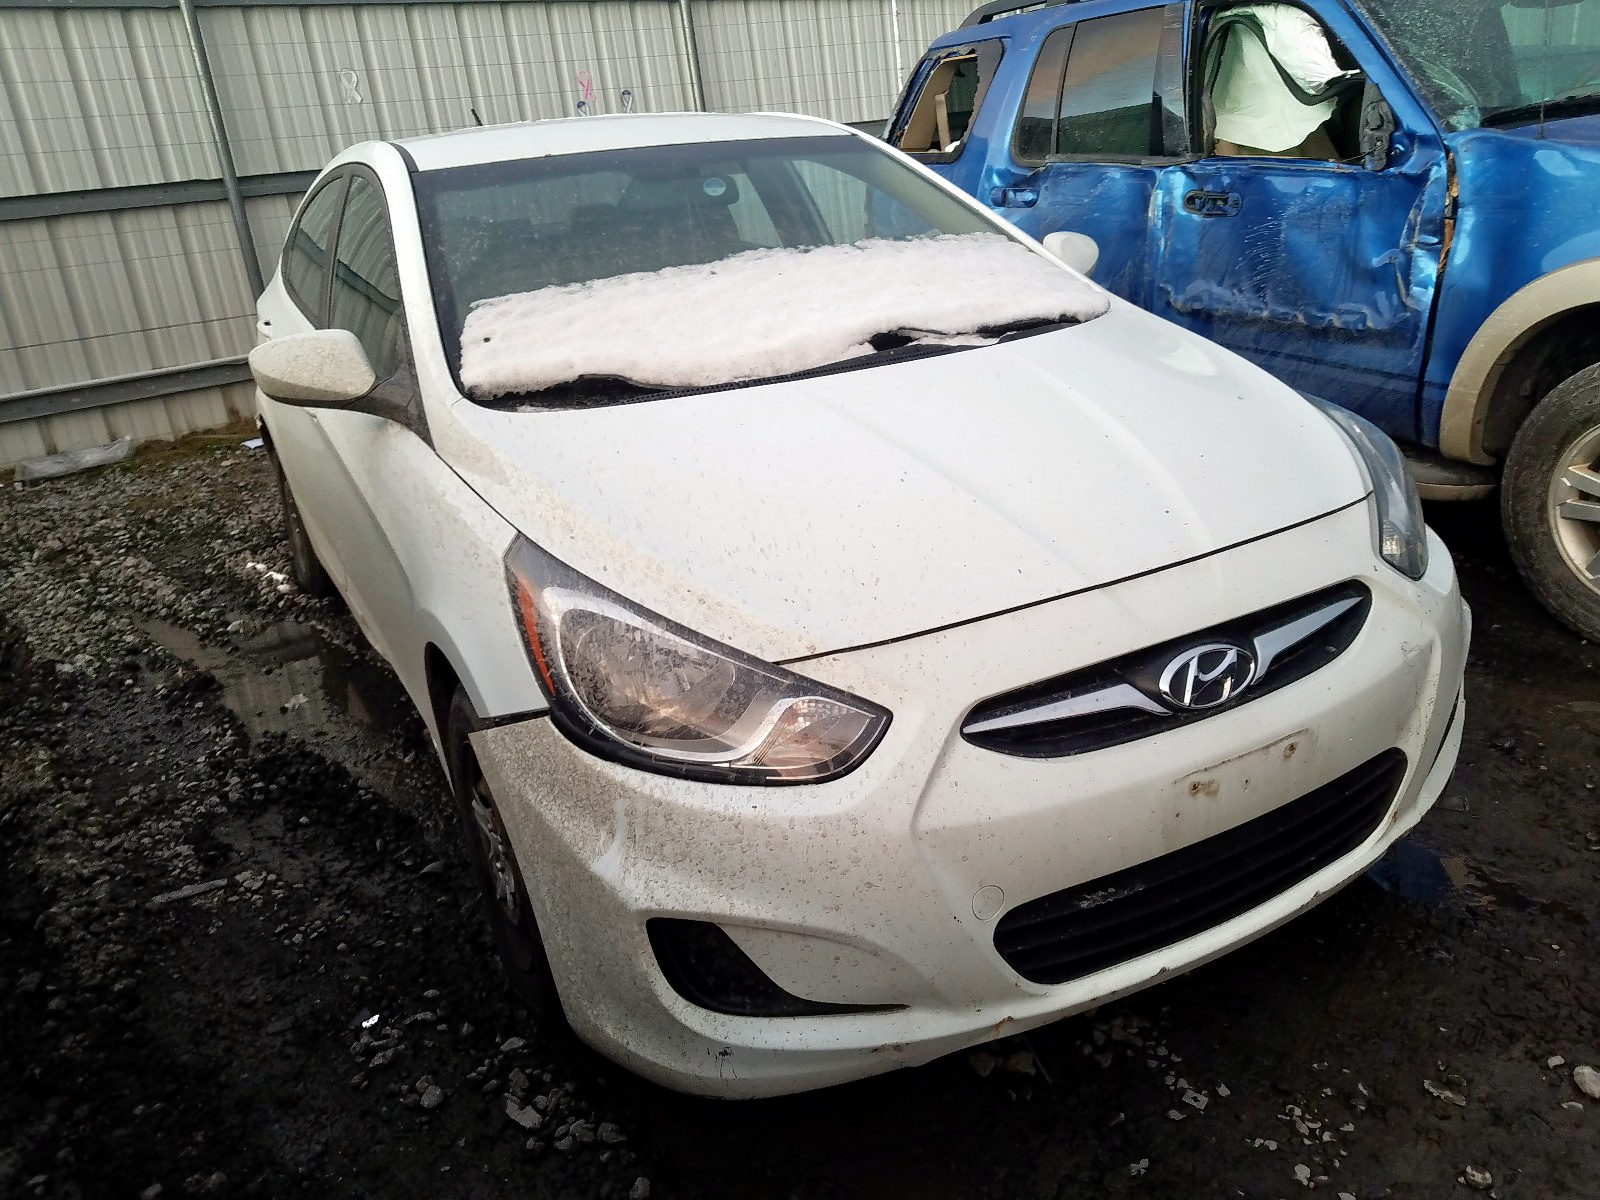 2012 Hyundai Accent Gls 1.6L Left View